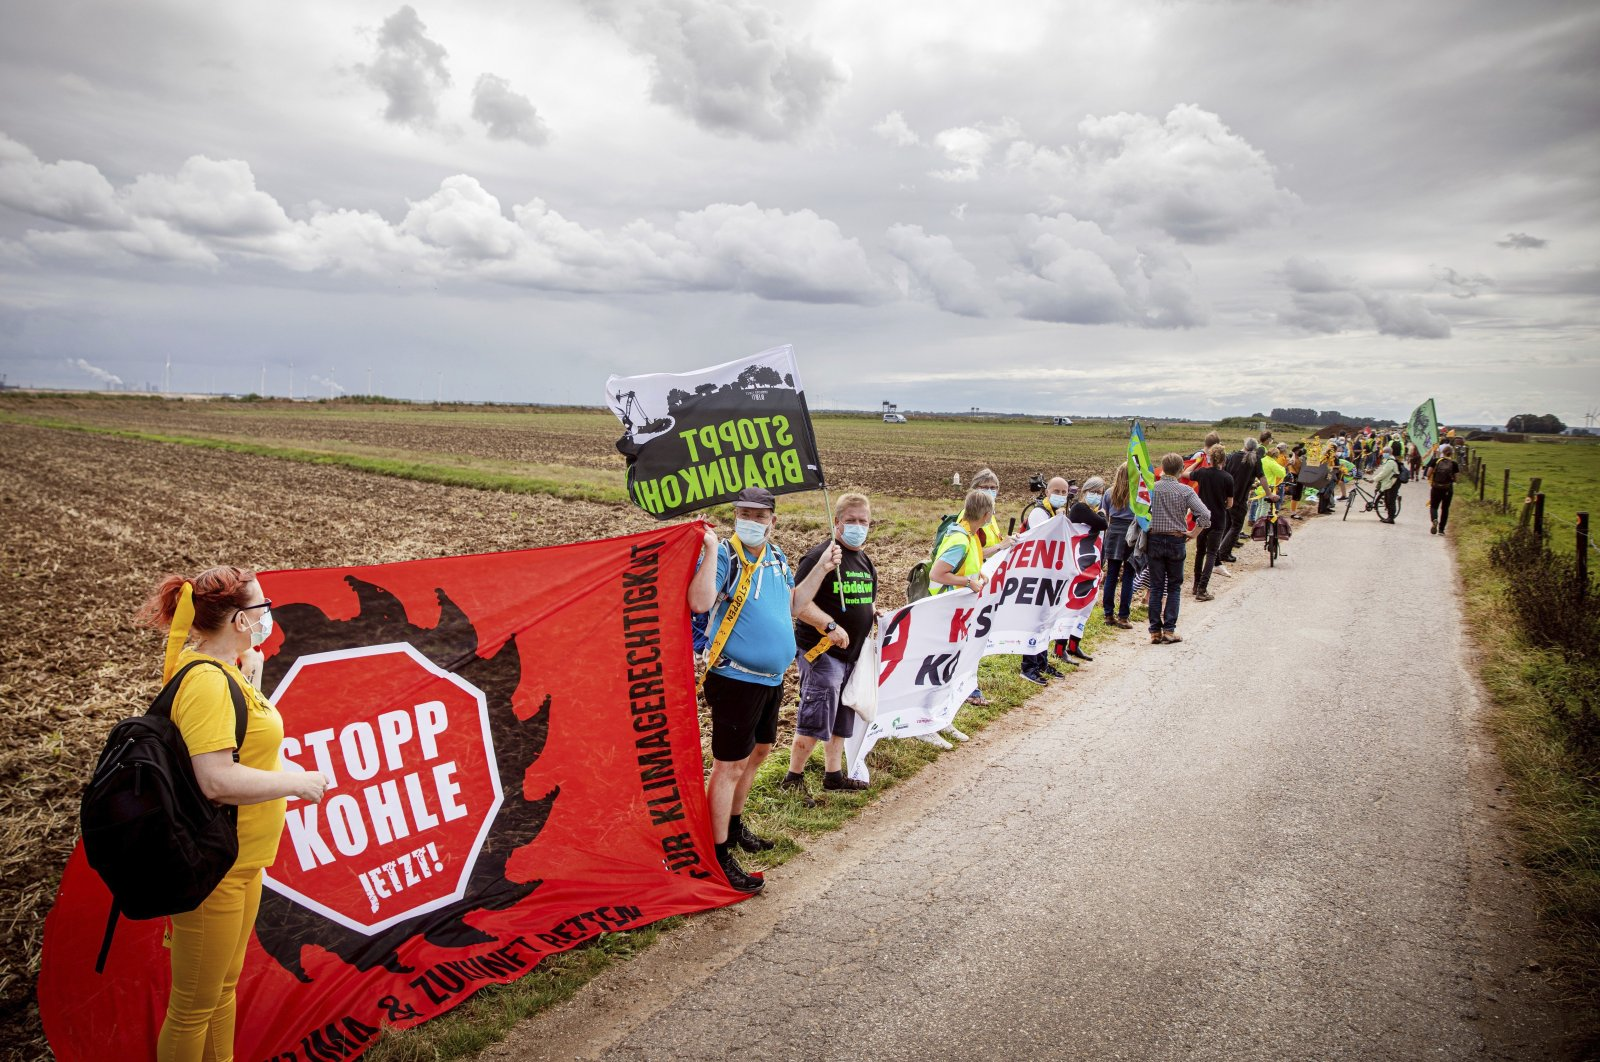 Environmental and climate activists, as well as residents of neighboring villages, form a human chain on the edge of the Garzweiler open-cast mine in Juechen, Germany, Aug. 7, 2021.  (Malte Krudewig/dpa via AP)